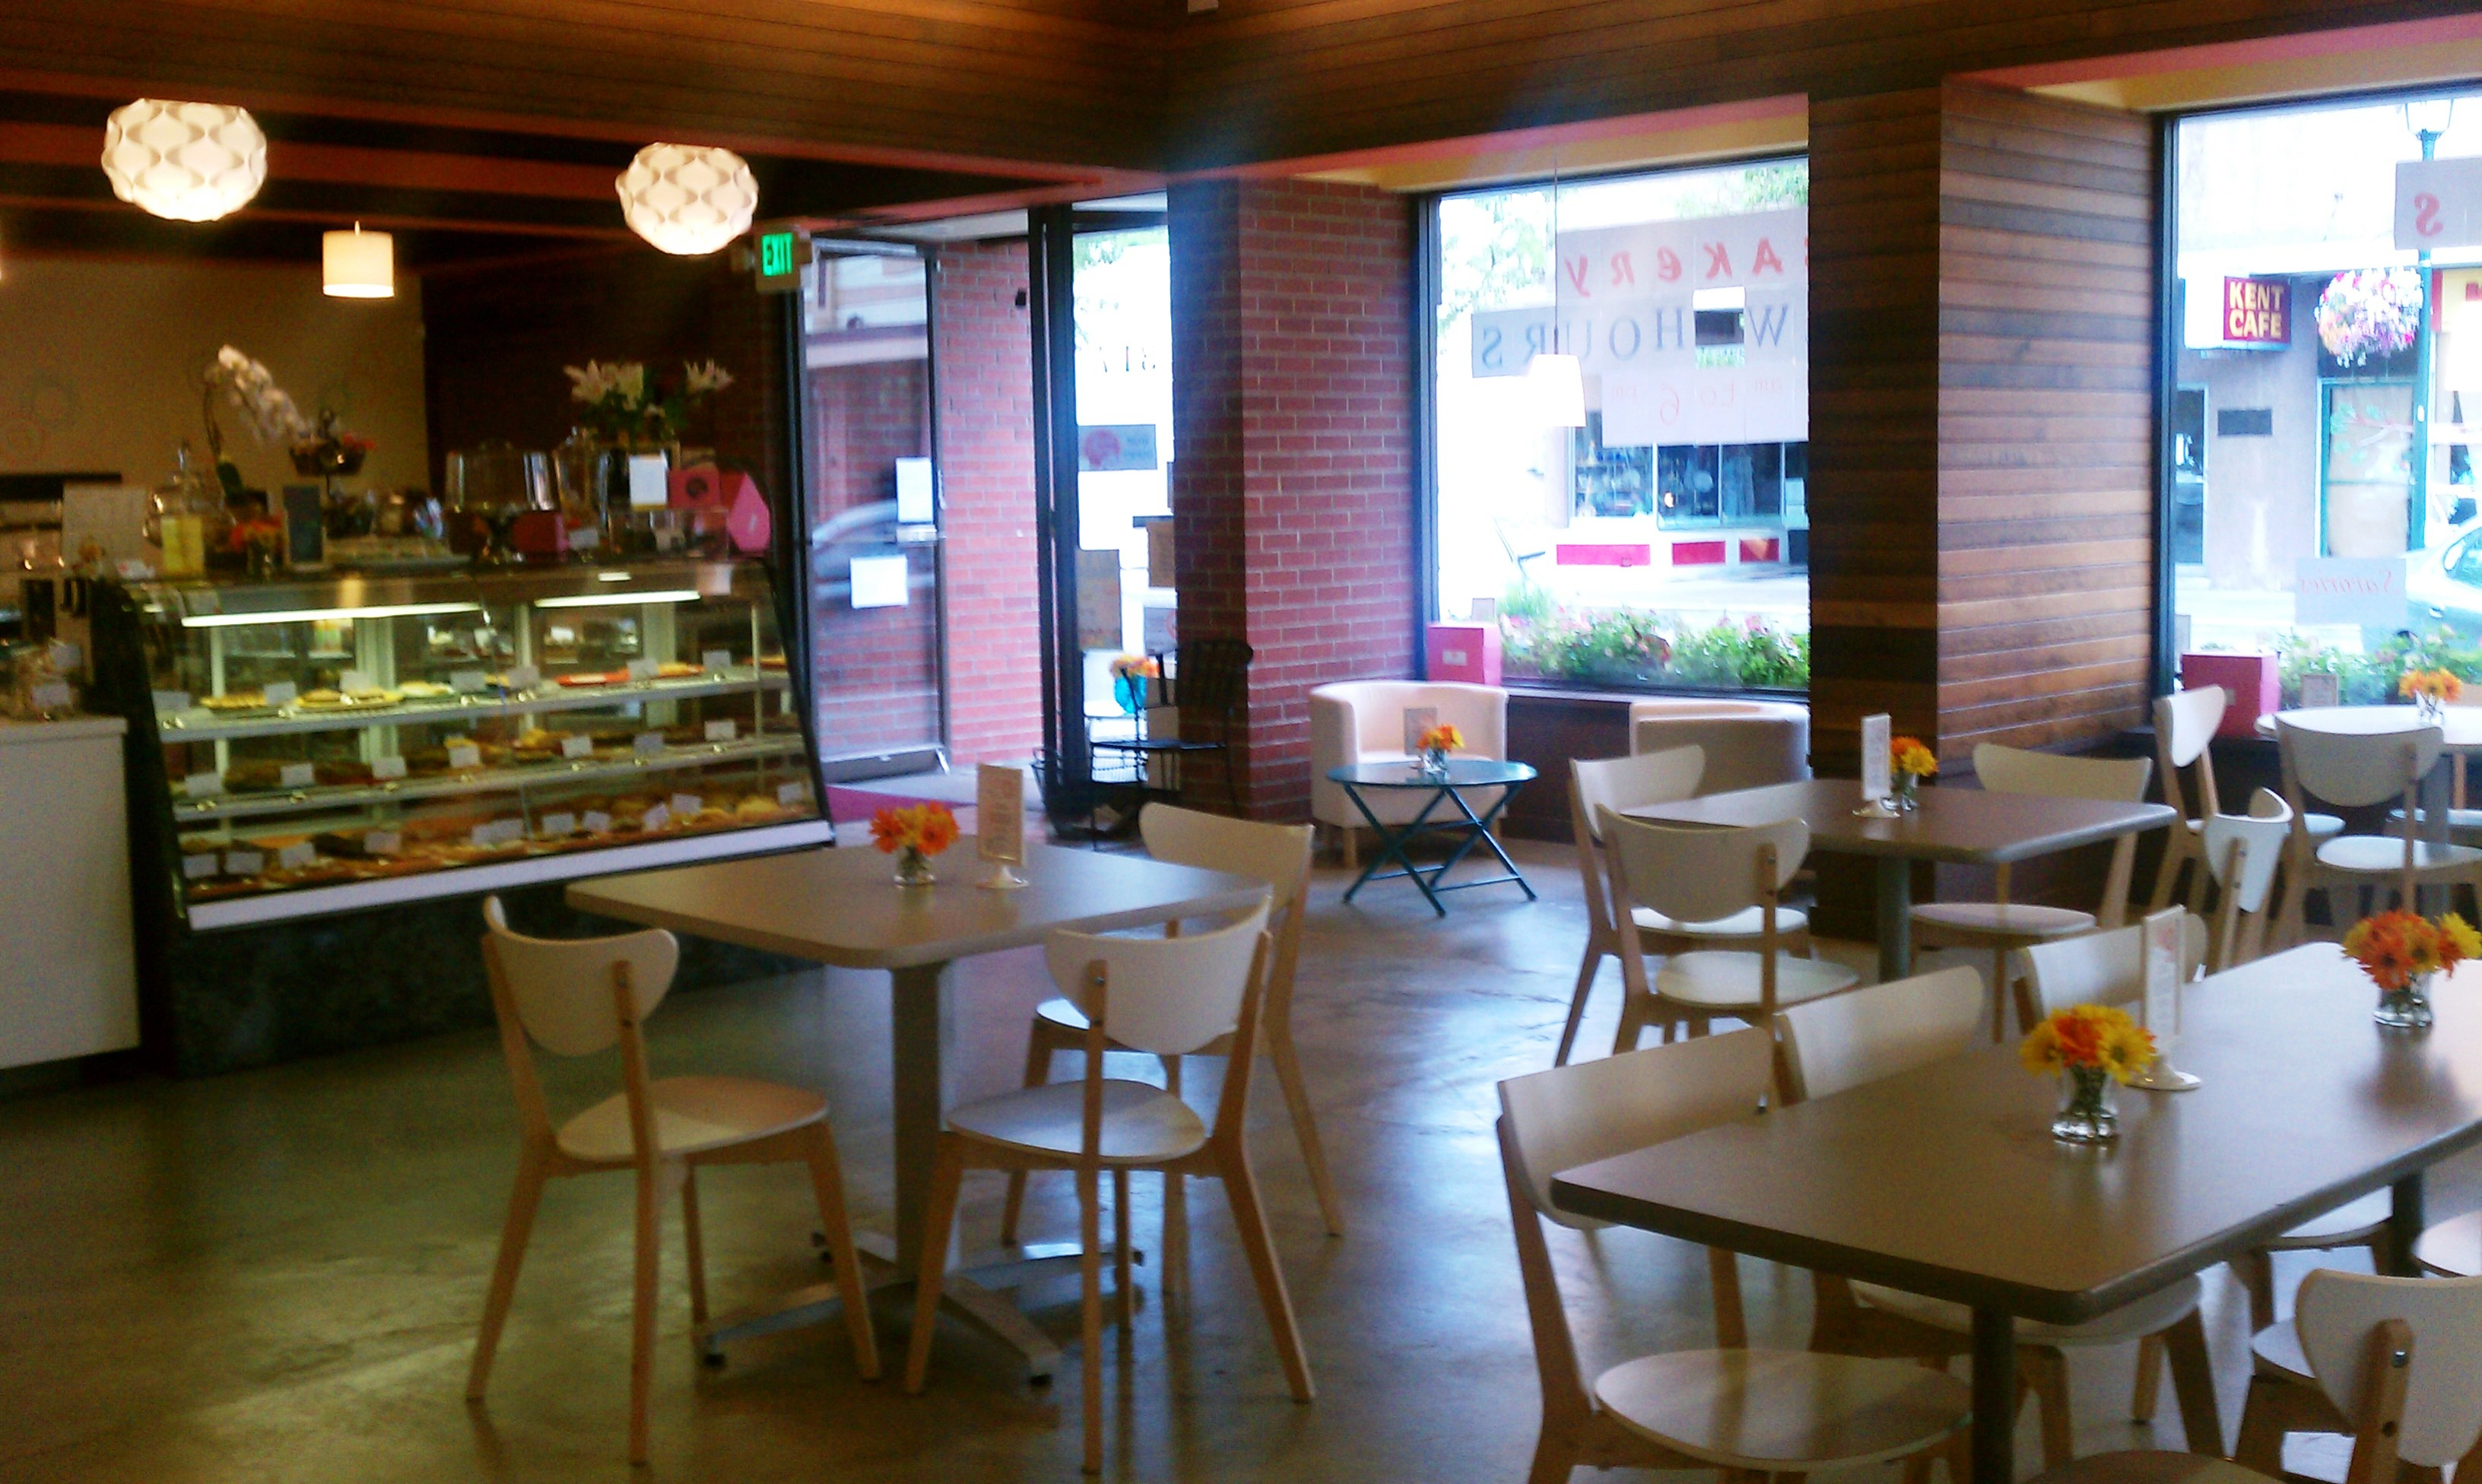 Sweet Themes Bakery: A Great Gathering Place for Meetings, Gatherings and Get-Togethers